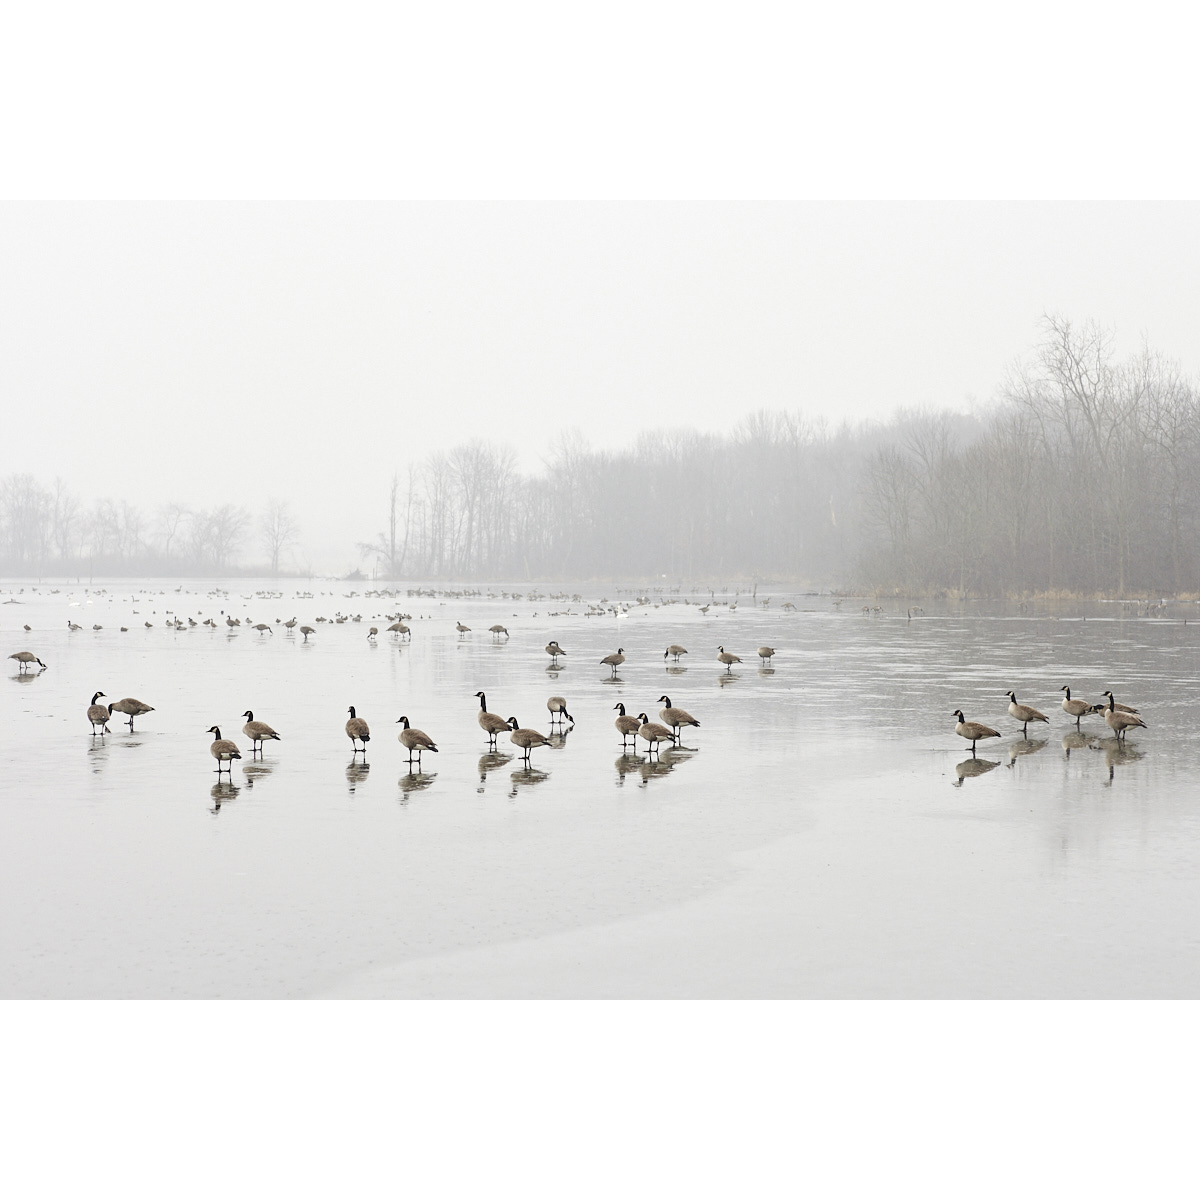 Untitled (Geese on Pond) 003